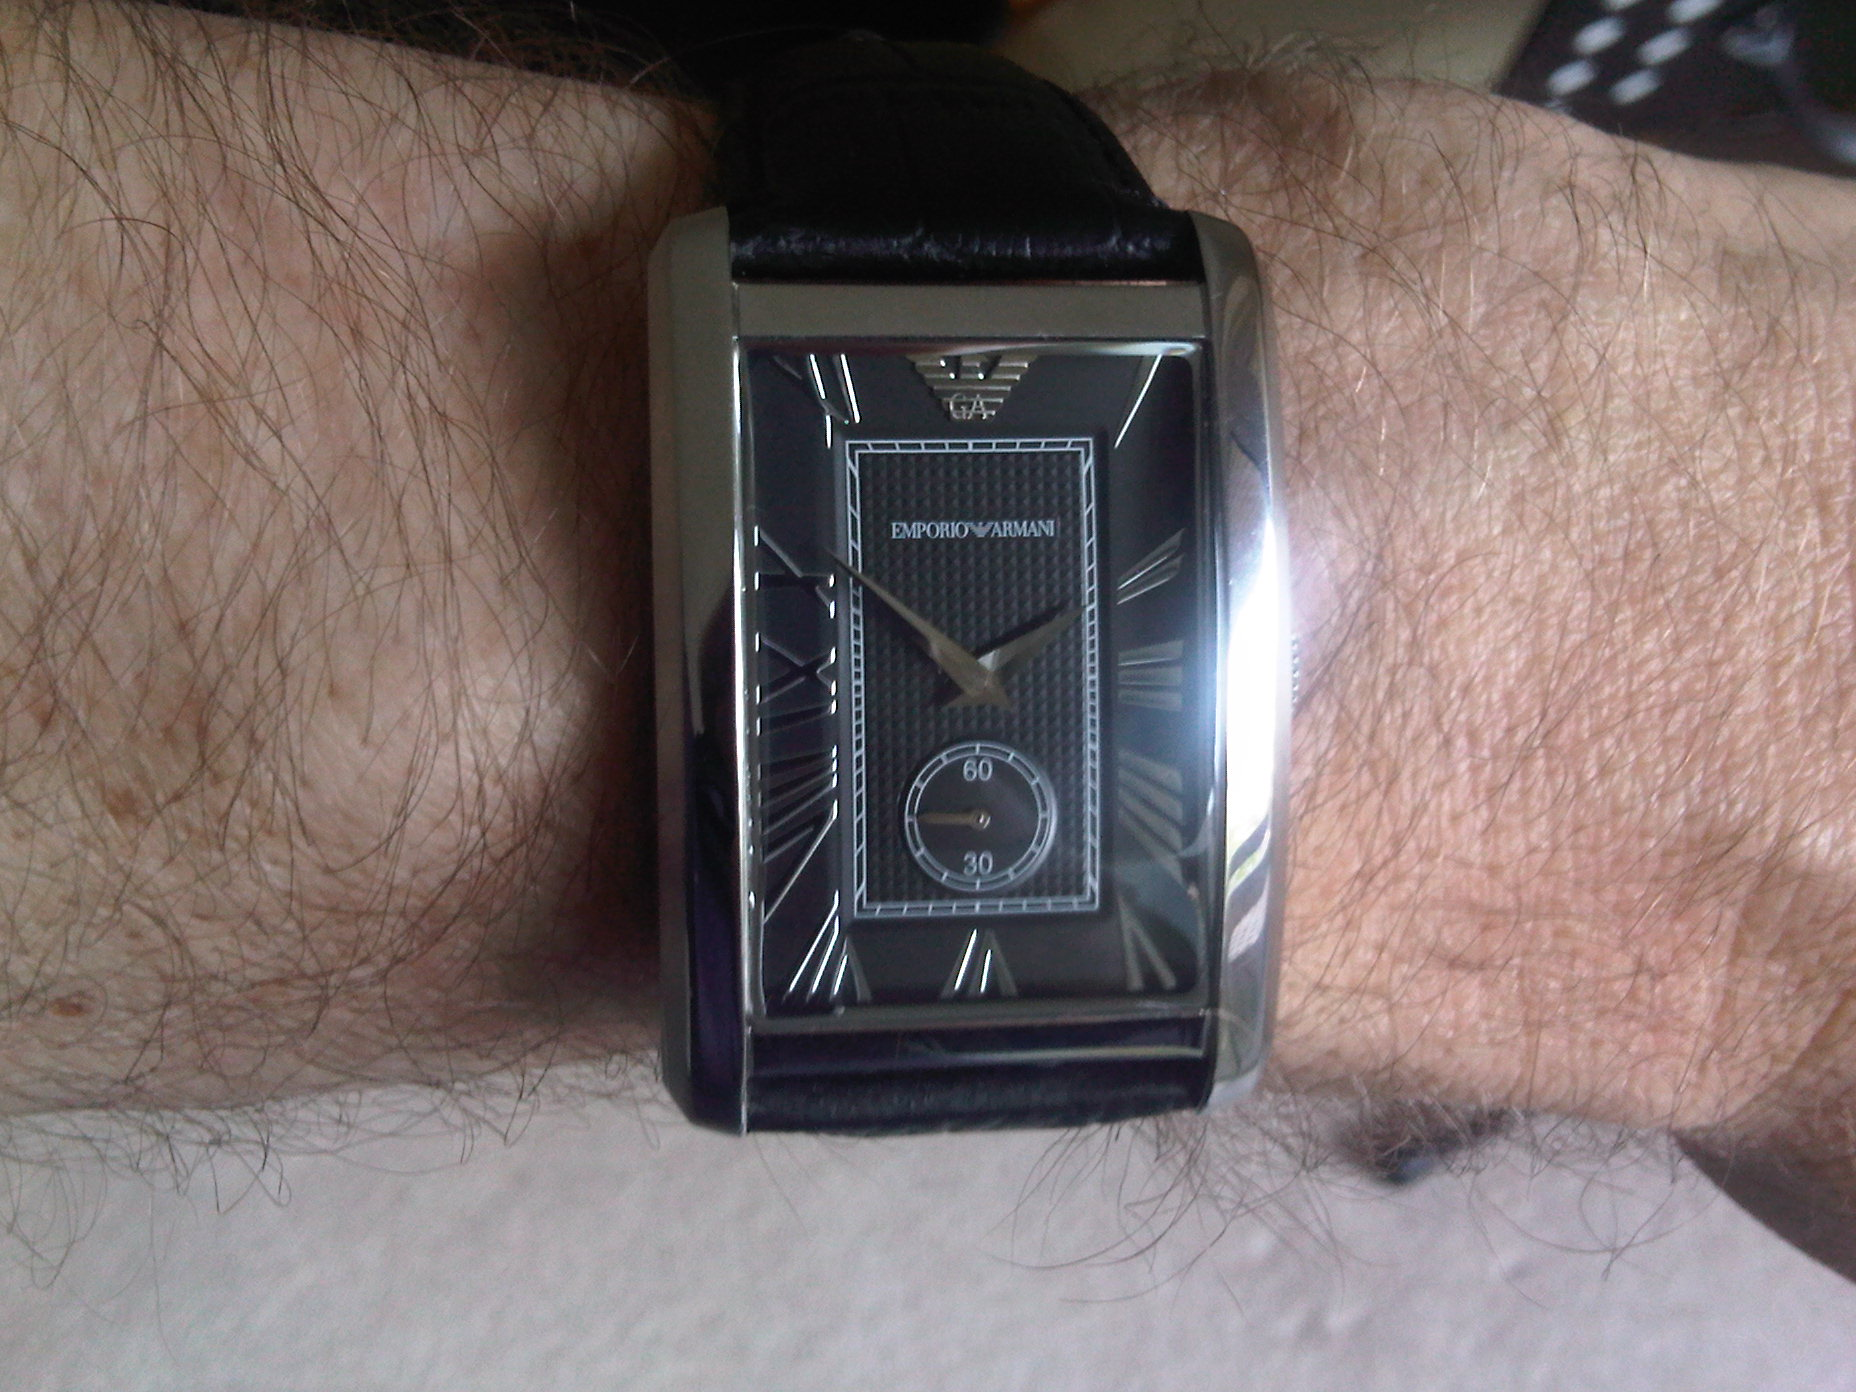 8636452882c I always wear Armani suits and this is the watch Ive long been looking for  to complement them. I love the elegant 1930s looks